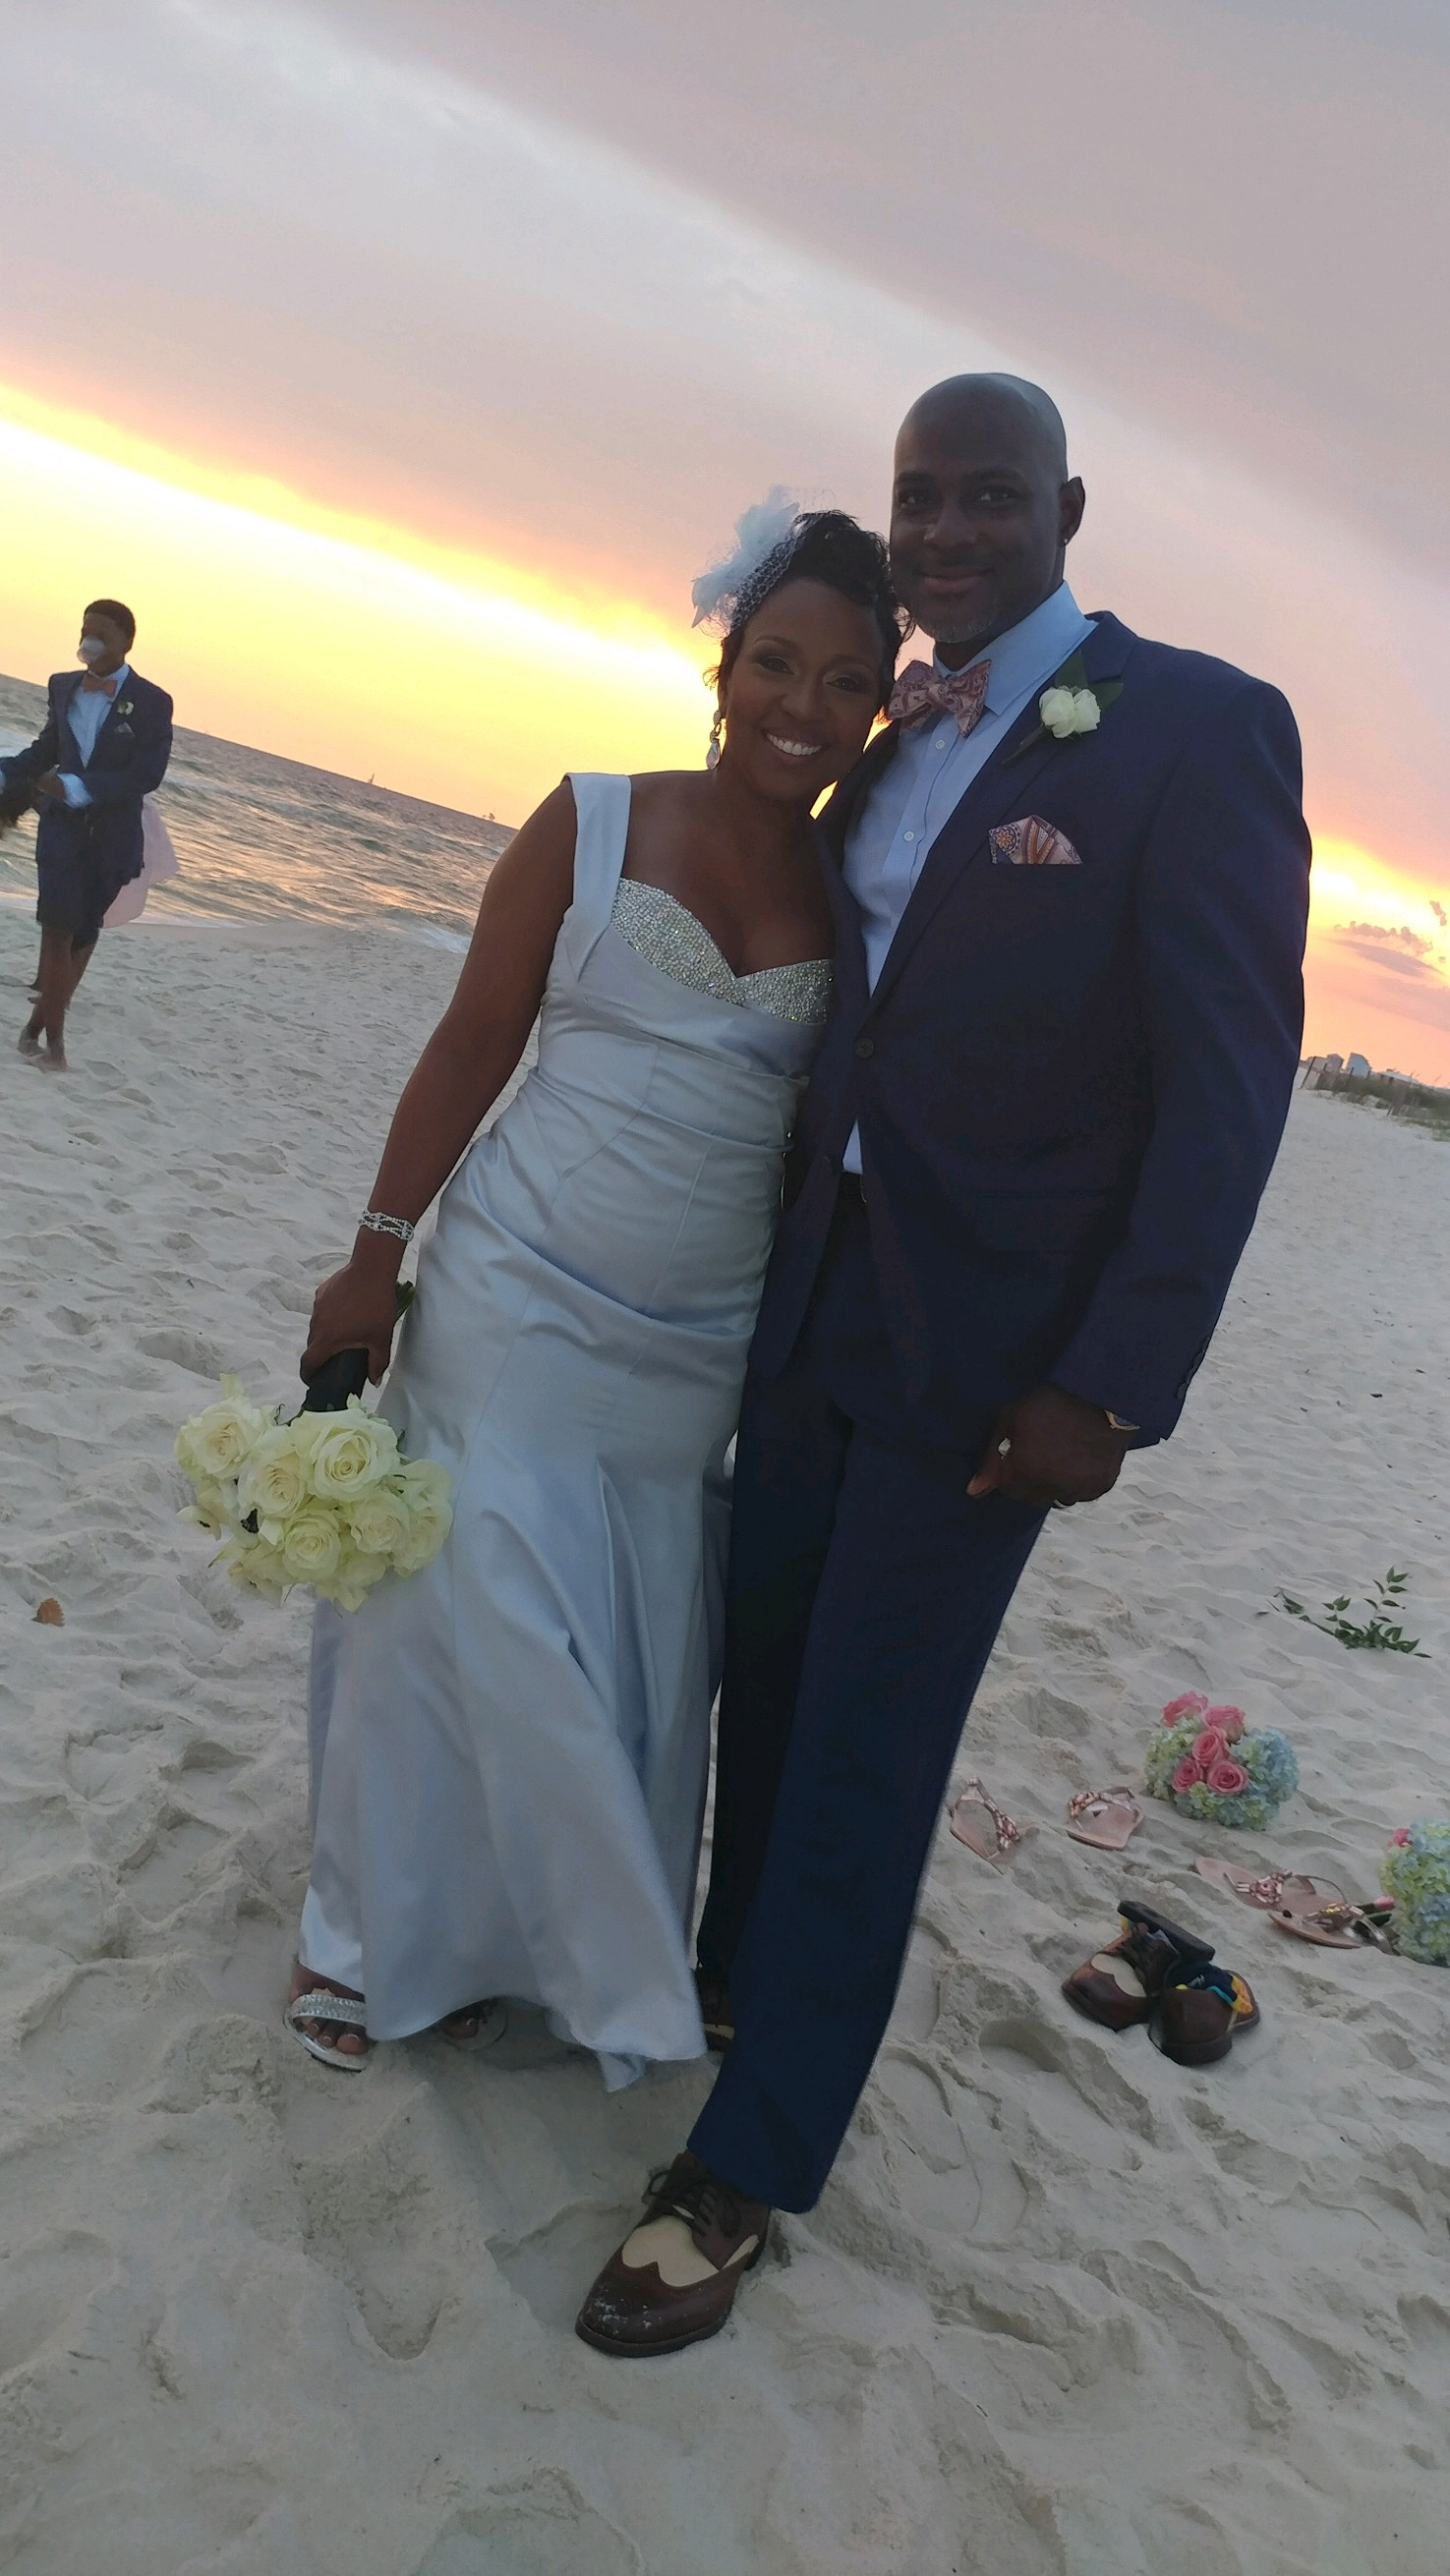 The couple tied the knot on Saturday, Sept. 23 on the beach.